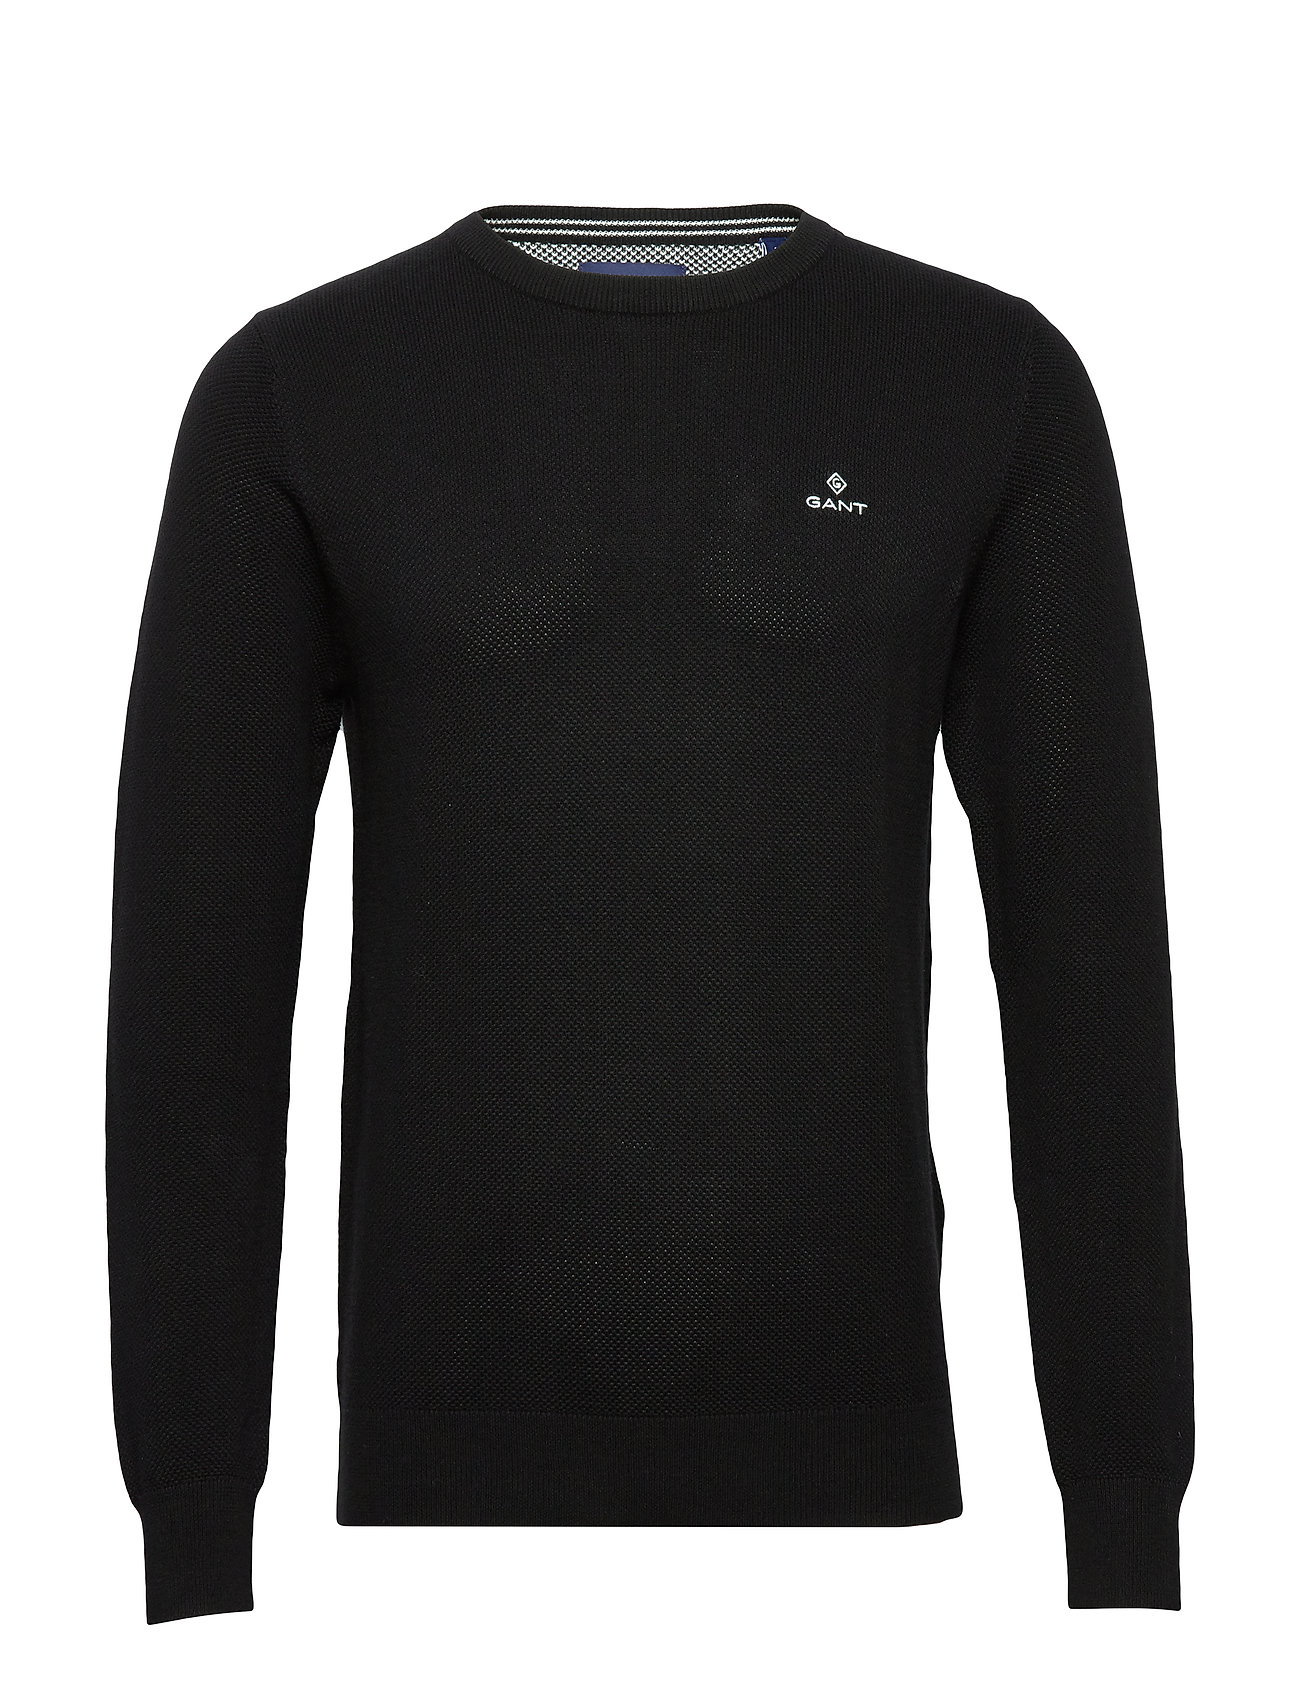 Gant COTTON PIQUE C-NECK - BLACK